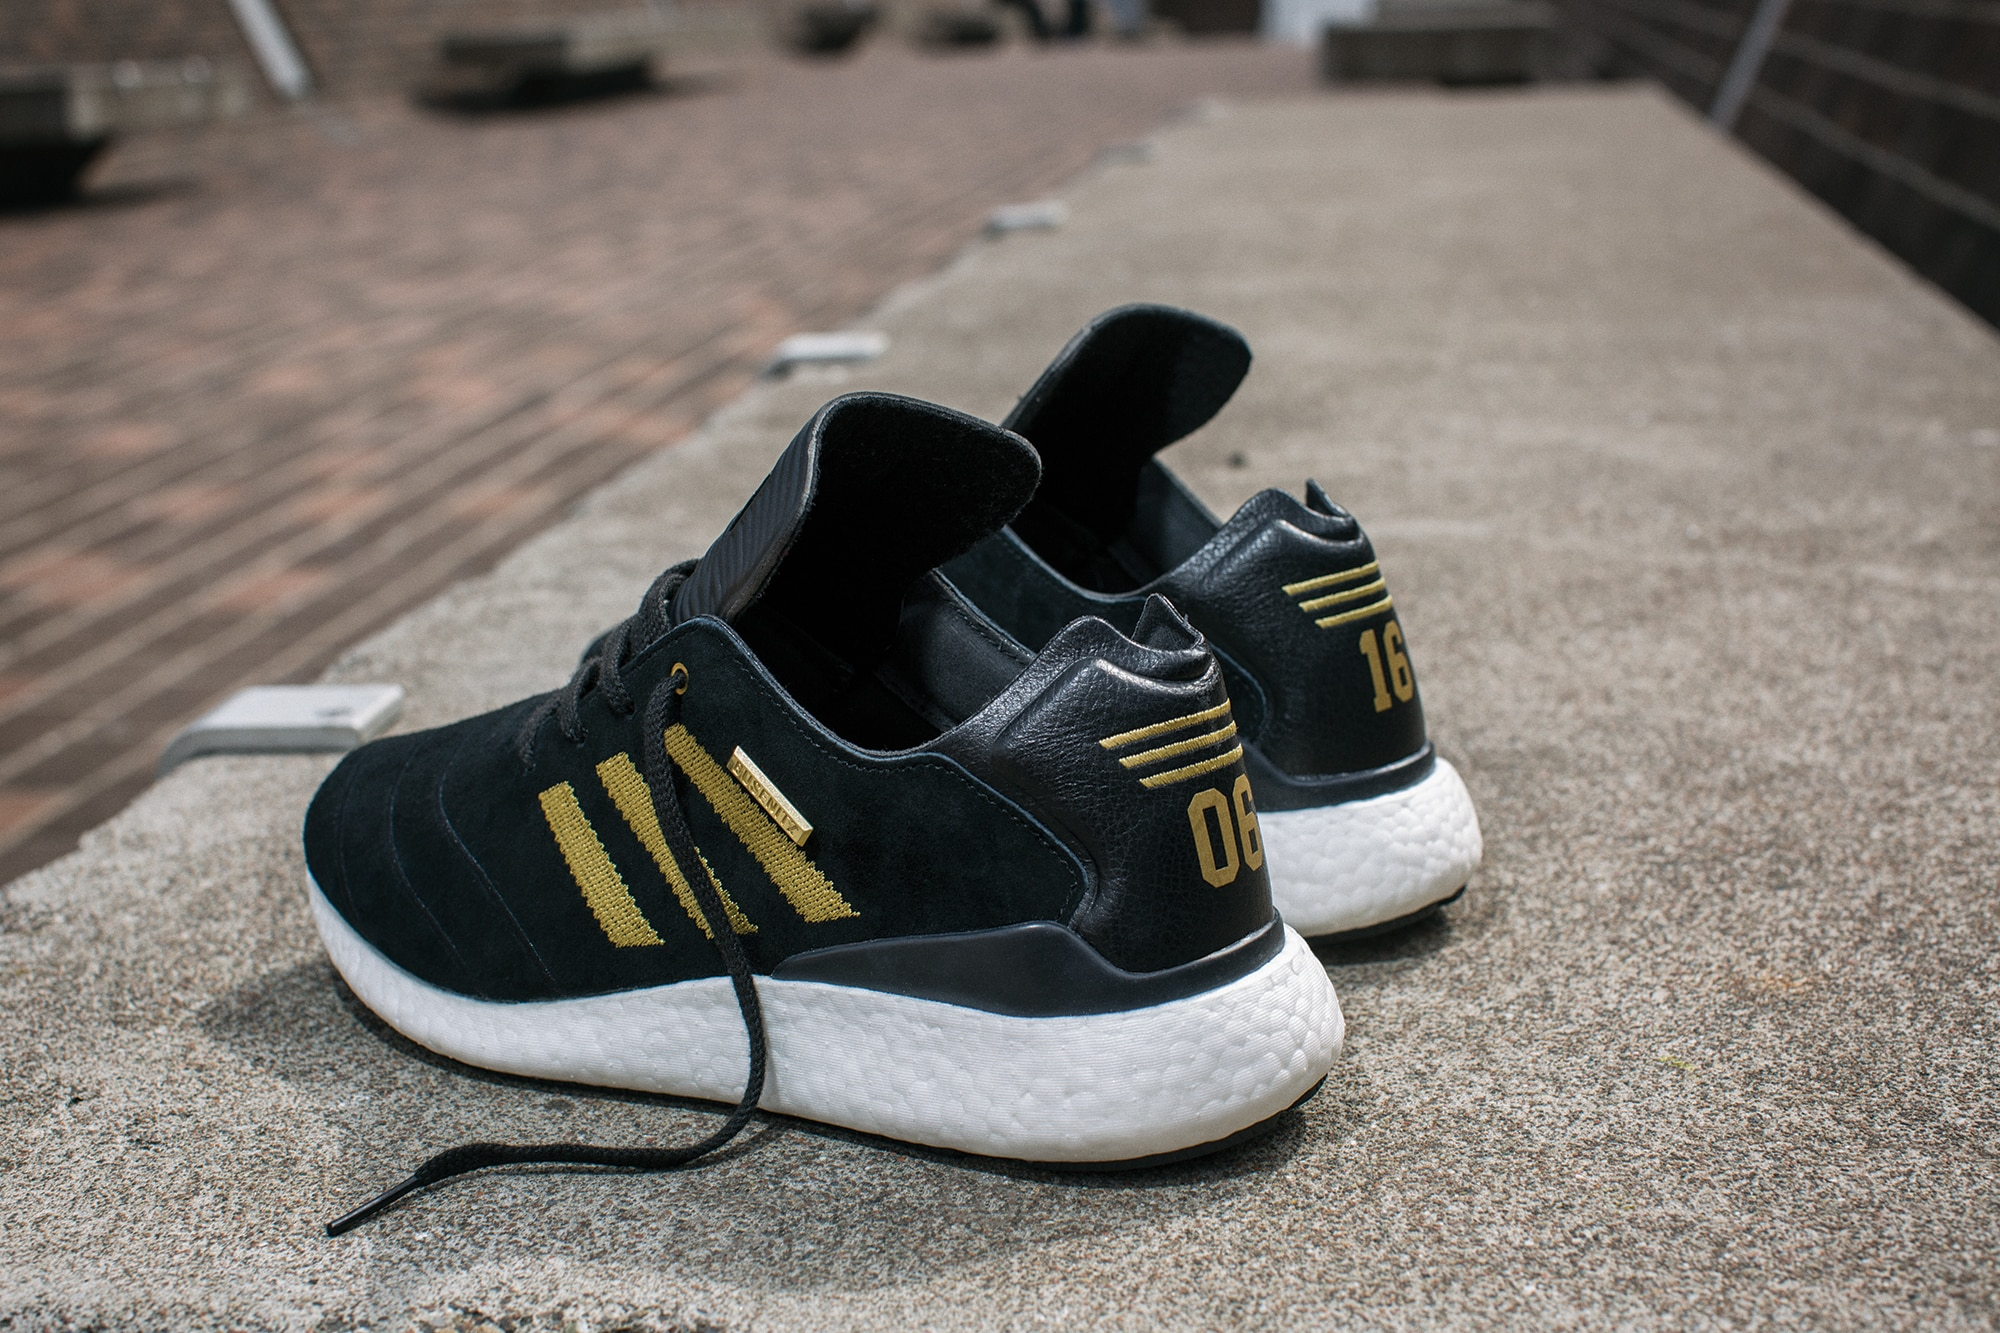 sports shoes b9b3d 3a9c6 Shop Adidas Busenitz Pure Boost 10 Year Shoes